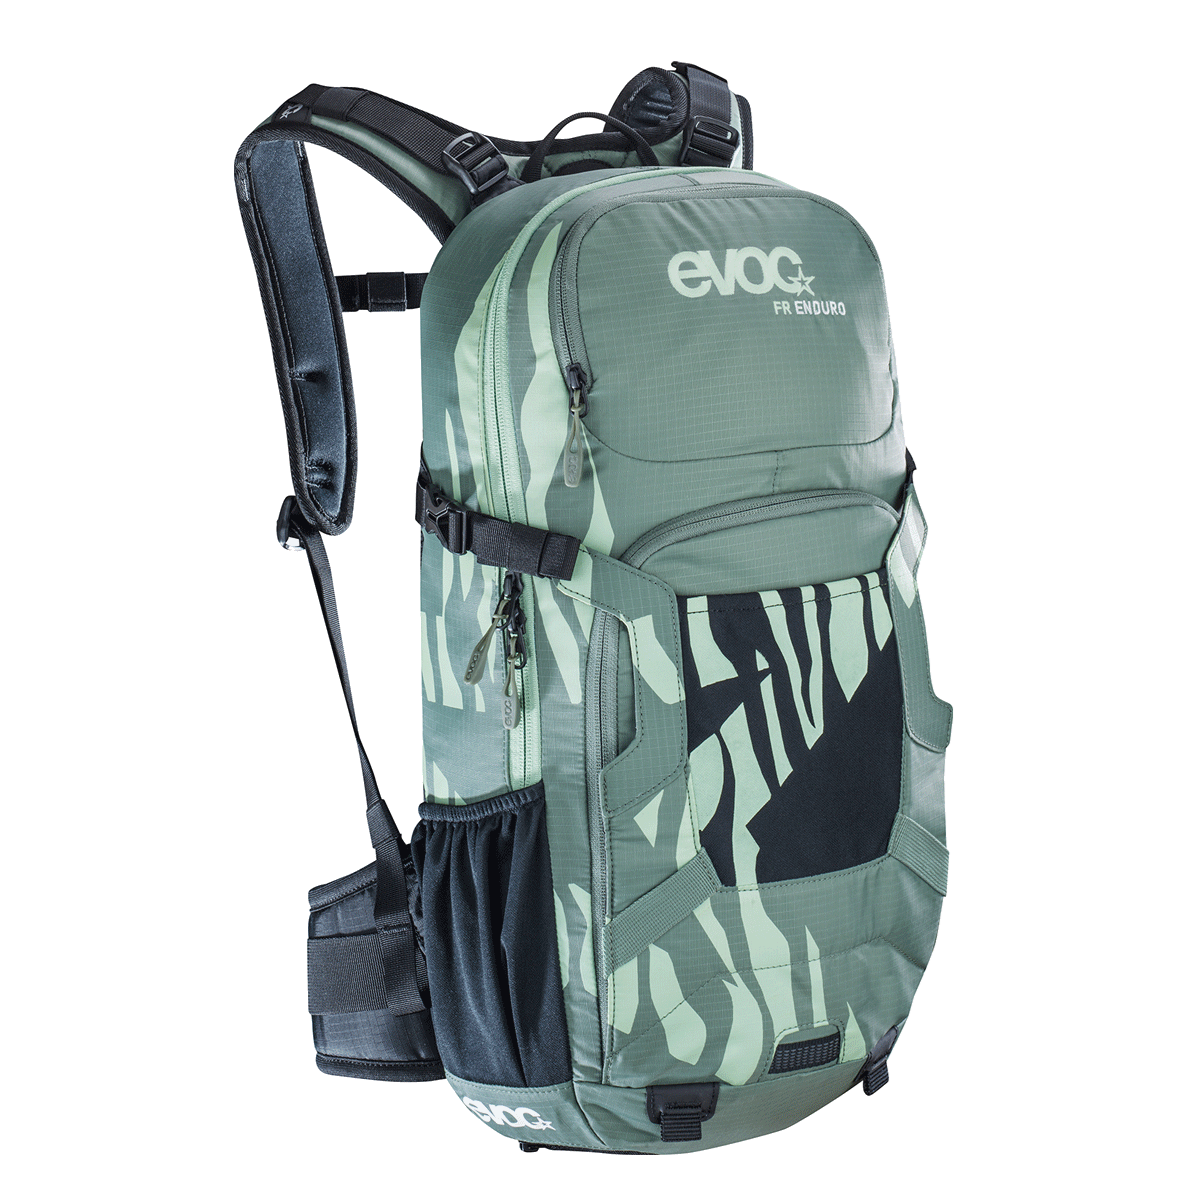 ev Accessories > Bags & Seatpacks Medium / Large EVOC FR ENDURO WOMEN'S PROTECTOR BACKPACK